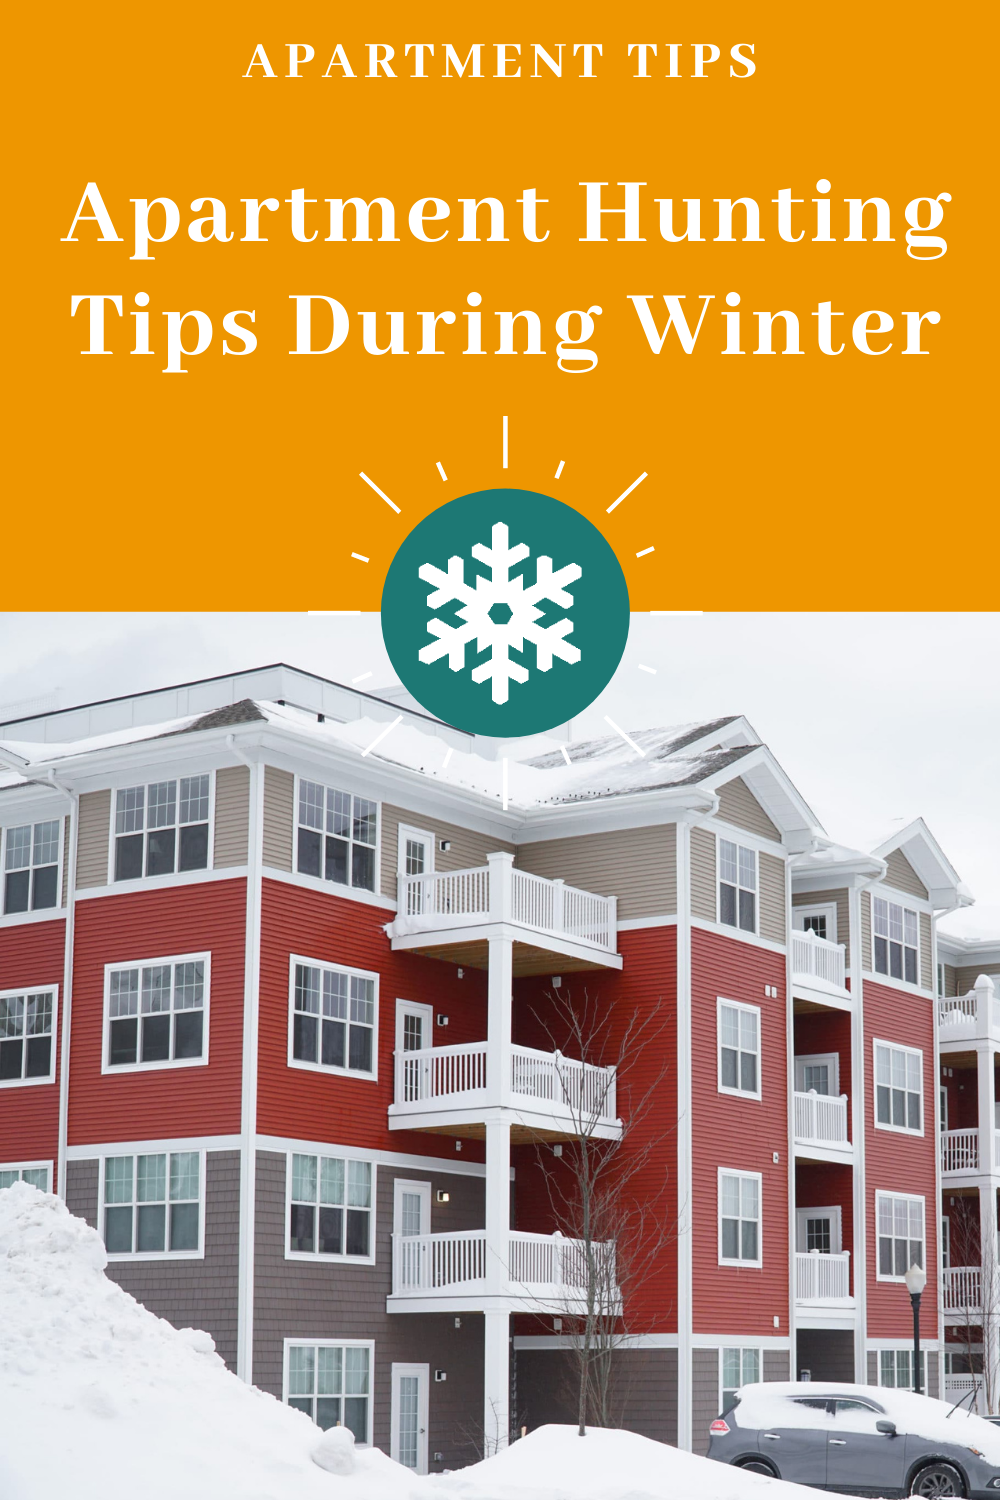 Apartment Hunting Tips During Winter Apartment Hunting Hunting Tips Hunting